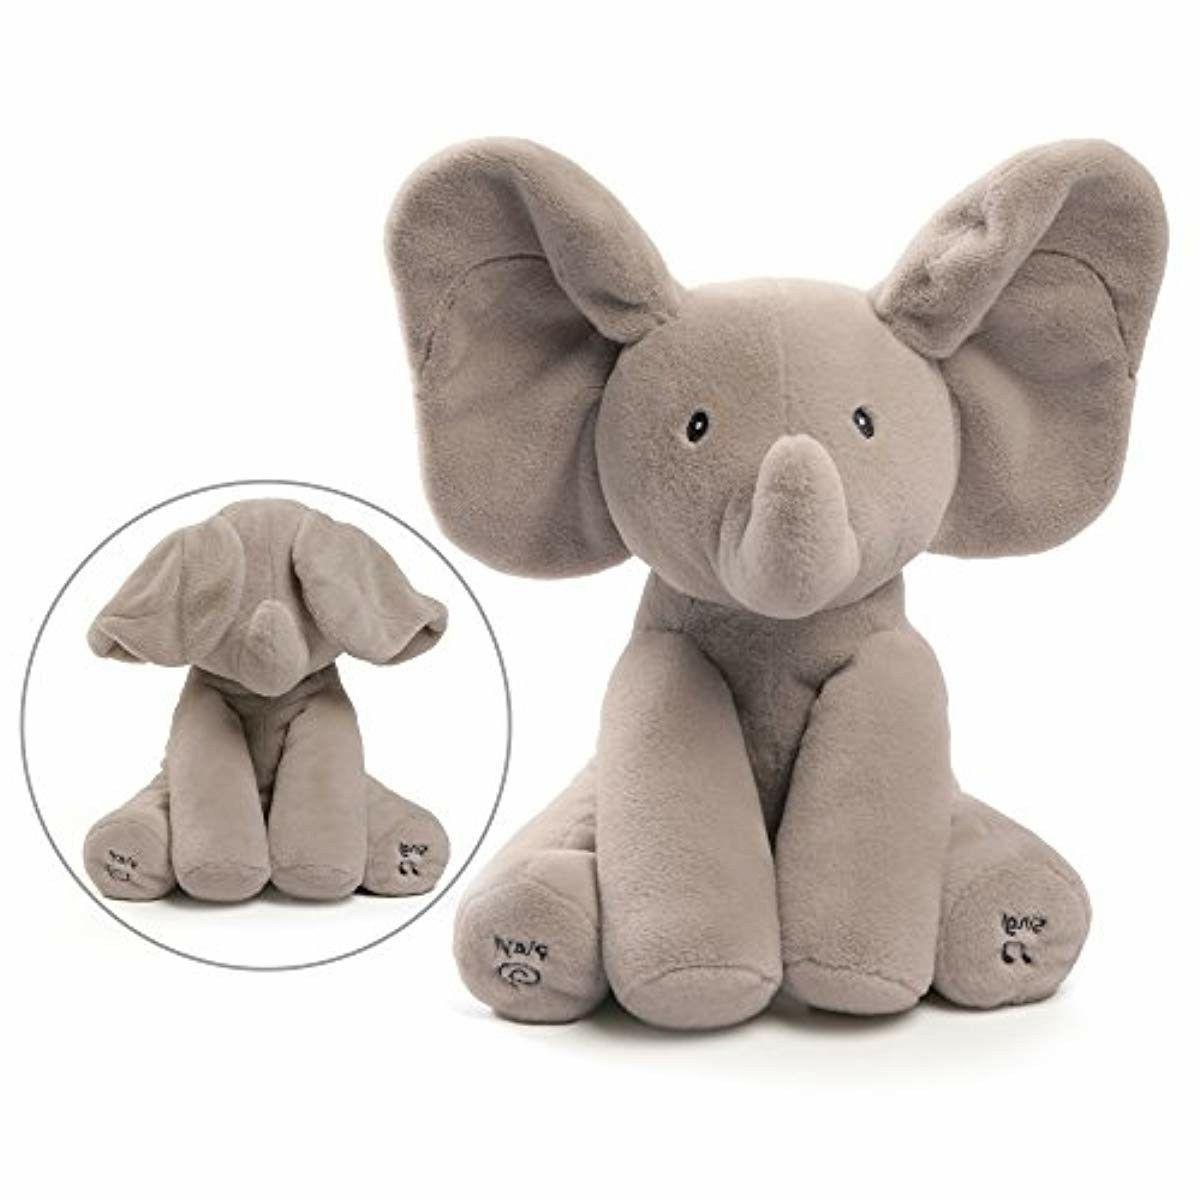 baby animated flappy the elephant plush toy